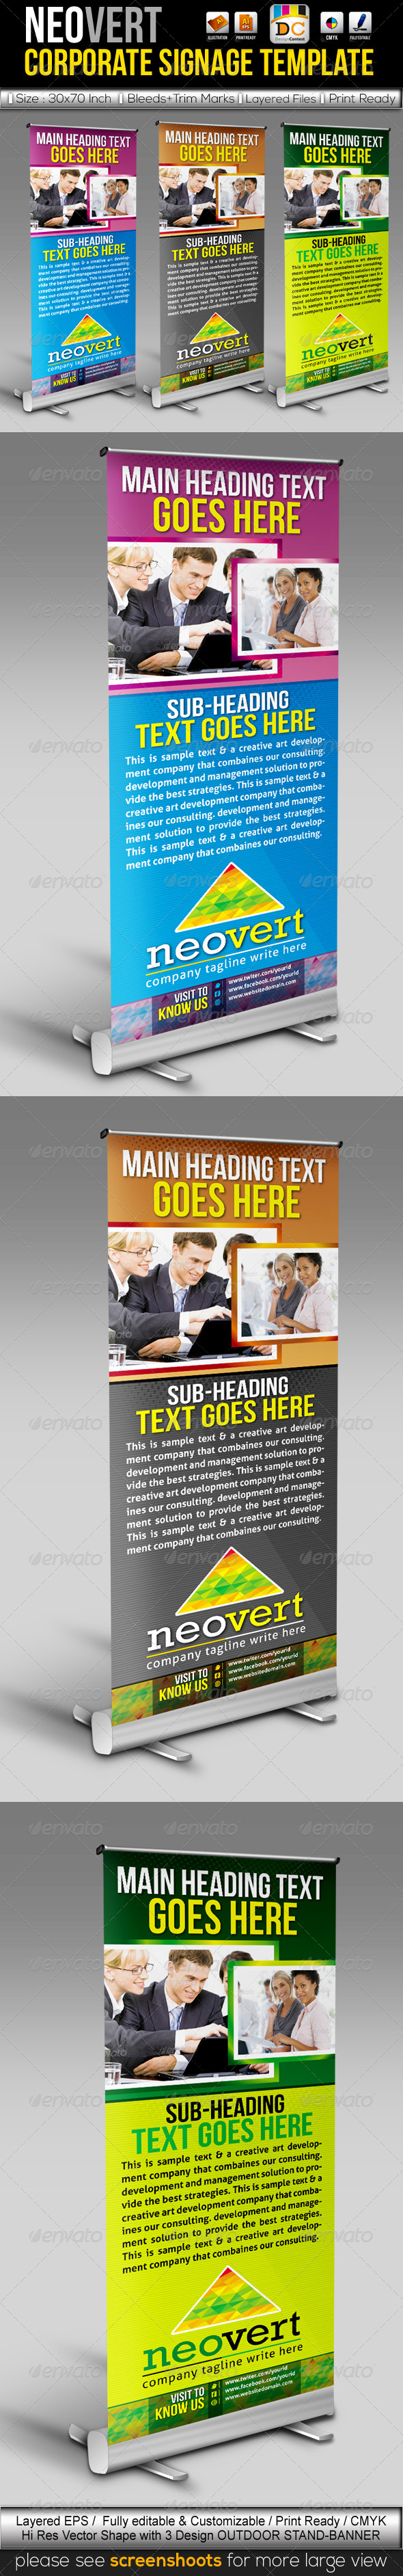 GraphicRiver NeoVert Out-Door Stand Banner Sinage Templates 4033318